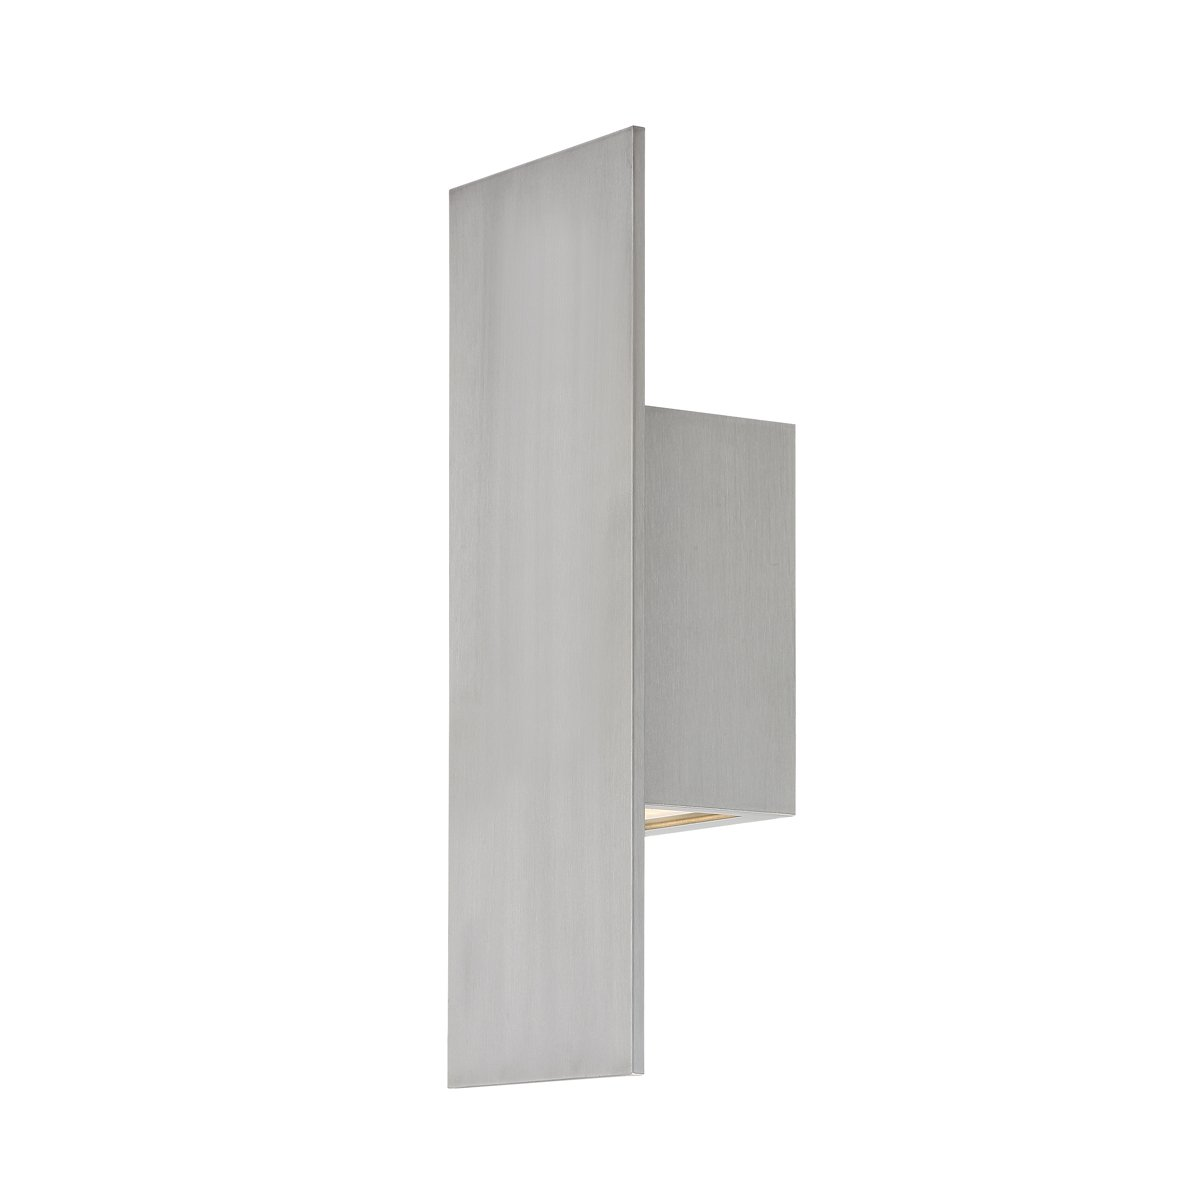 WAC Lighting WS-W54614-AL Icon LED Outdoor Wall Light, 14 Inches, Brushed Aluminum